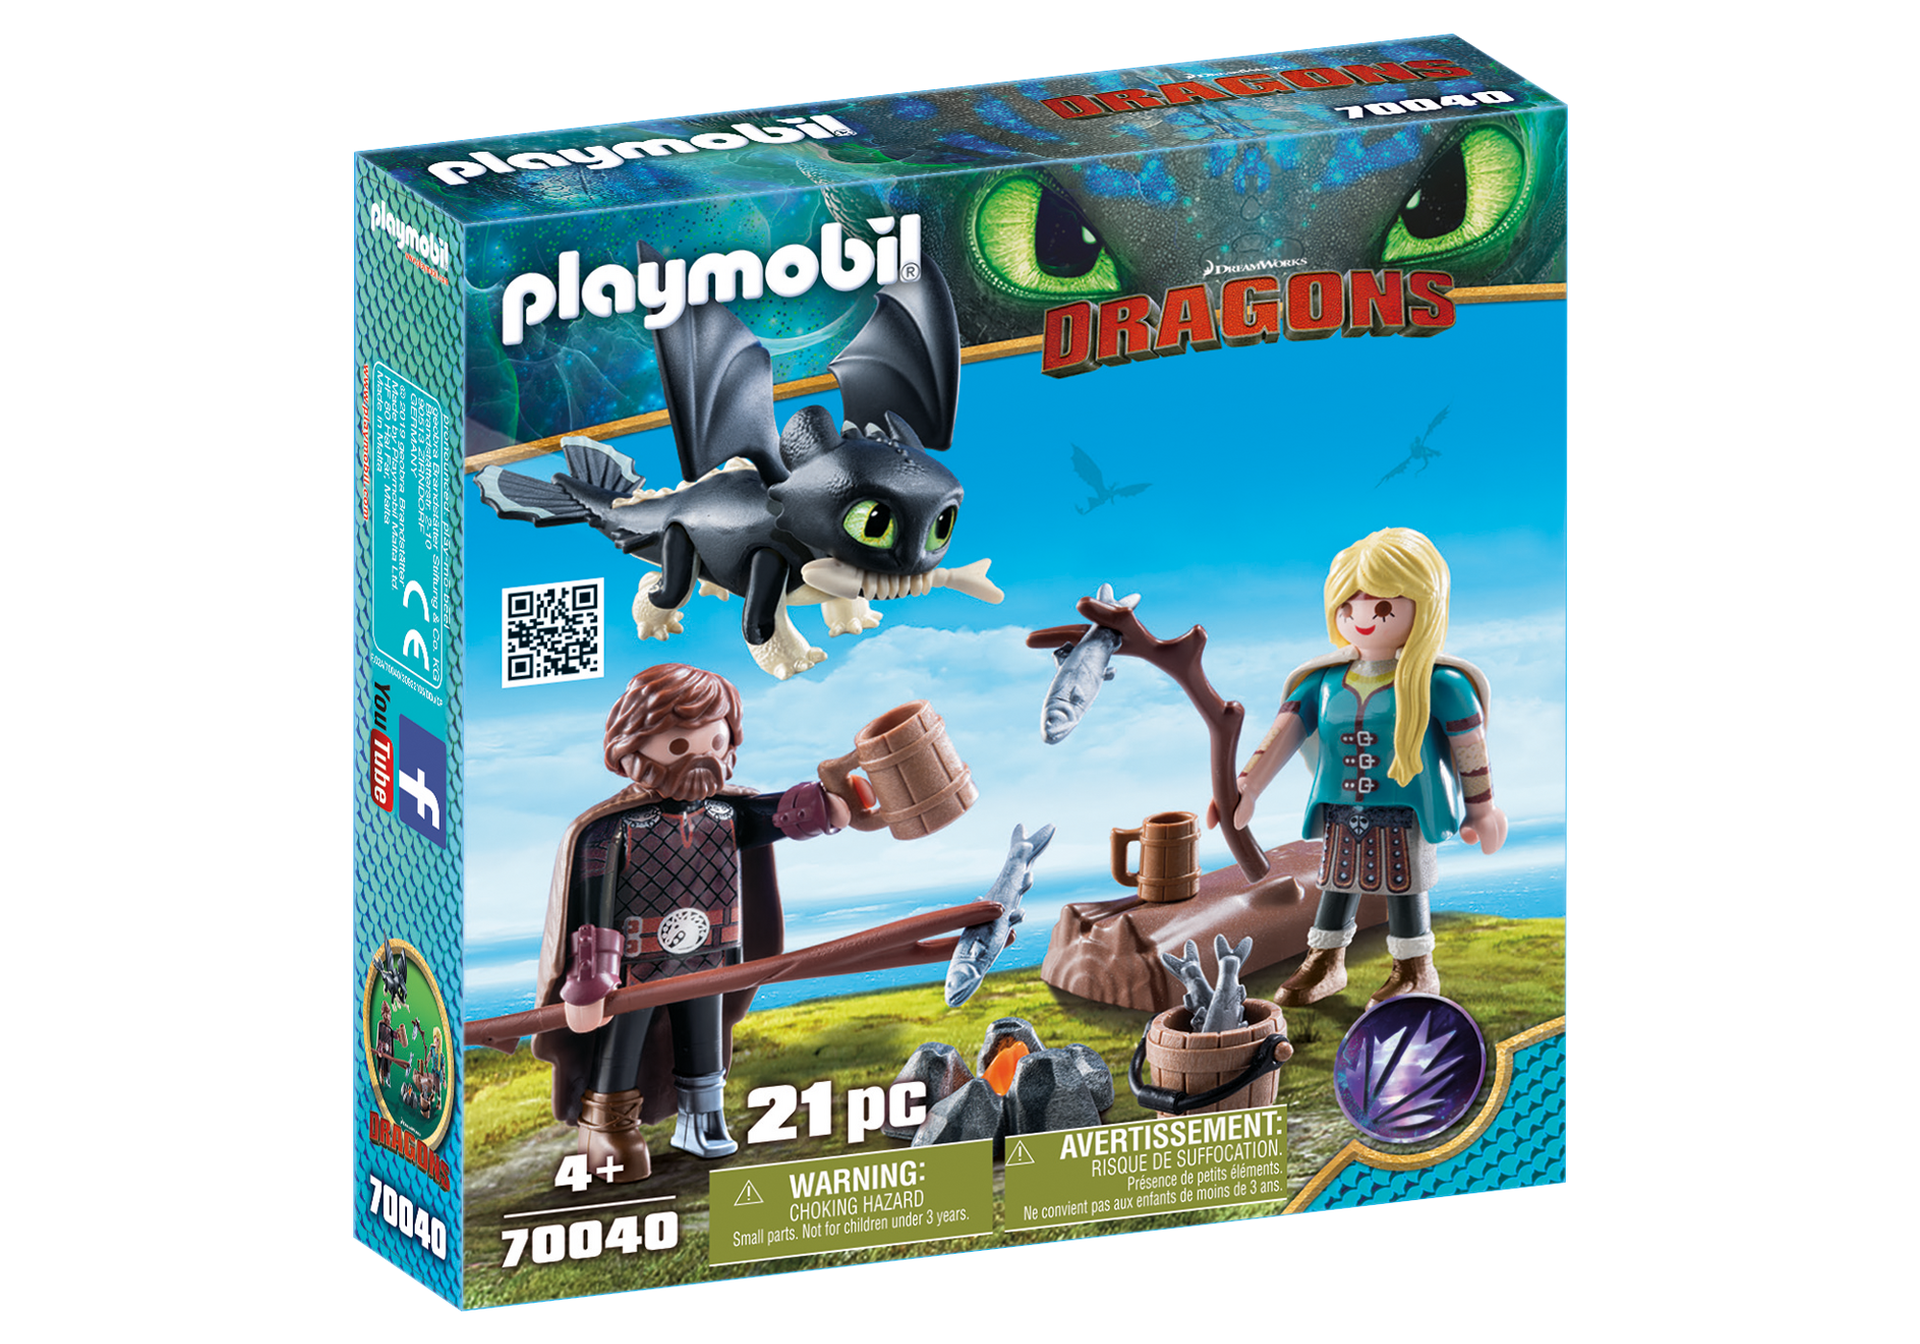 Playmobil - Hiccup and Astrid Playset (70040)